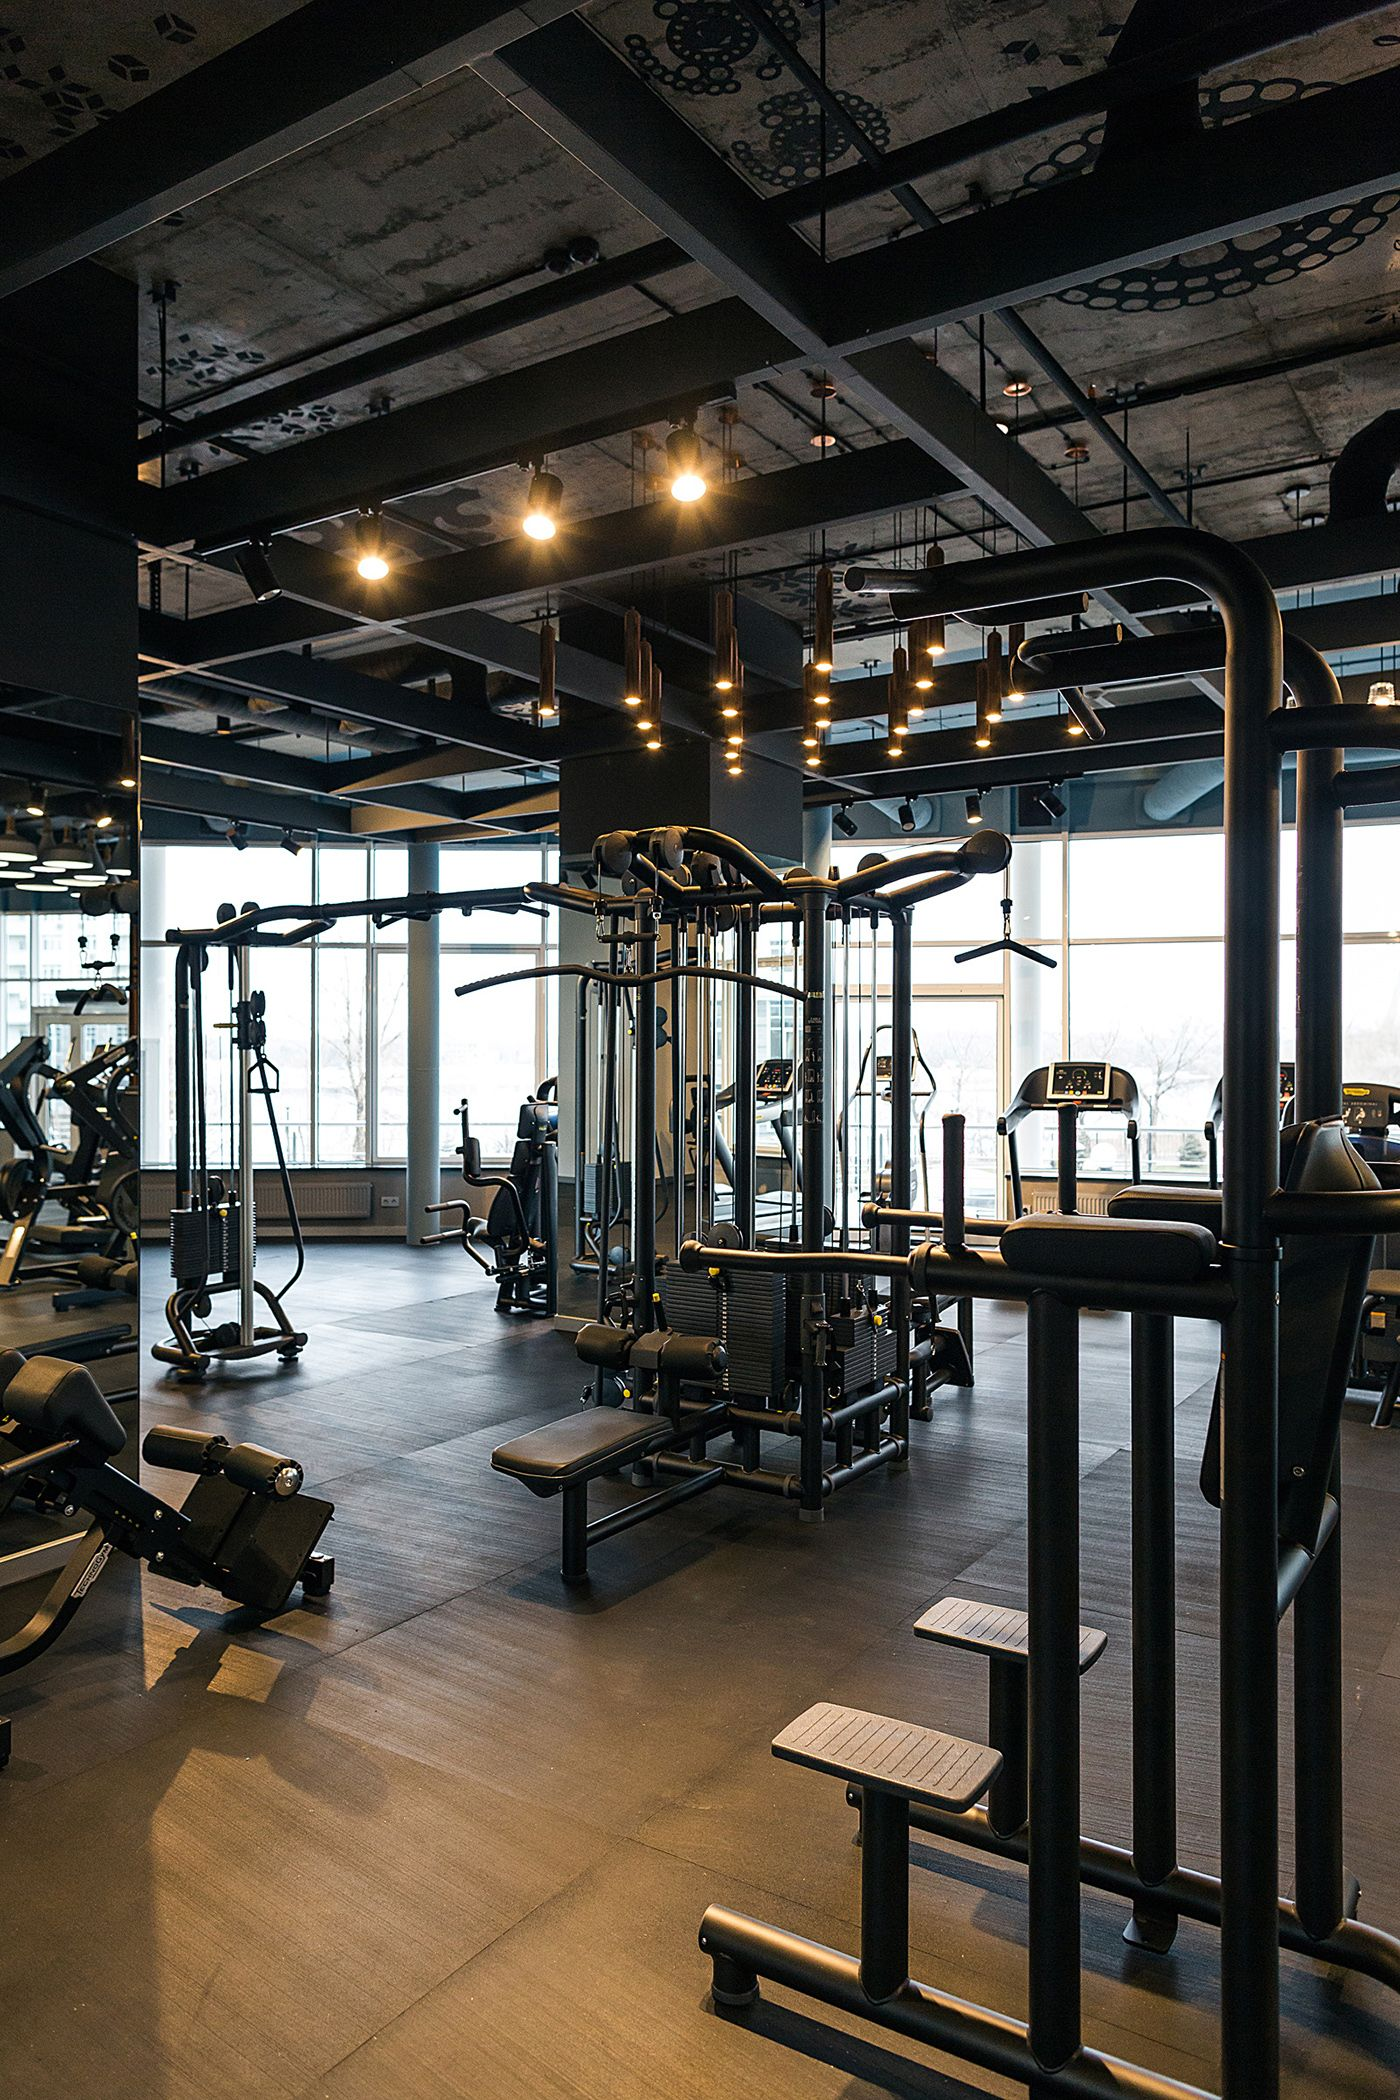 Palestra fitness club full project on behance